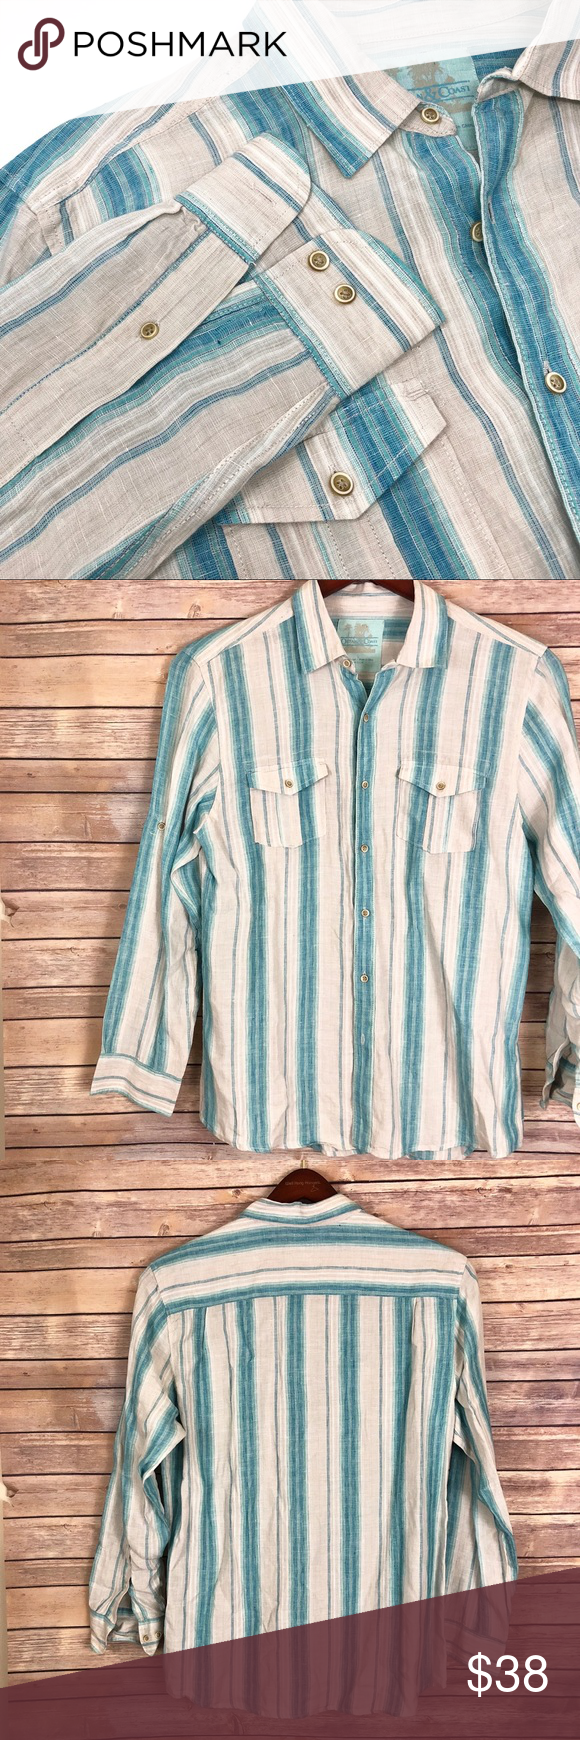 25dcfffc06b8 100% Linen Convertible Sleeve Striped Summer Shirt Ocean   Coast PreOwned  in Good Condition No Stains